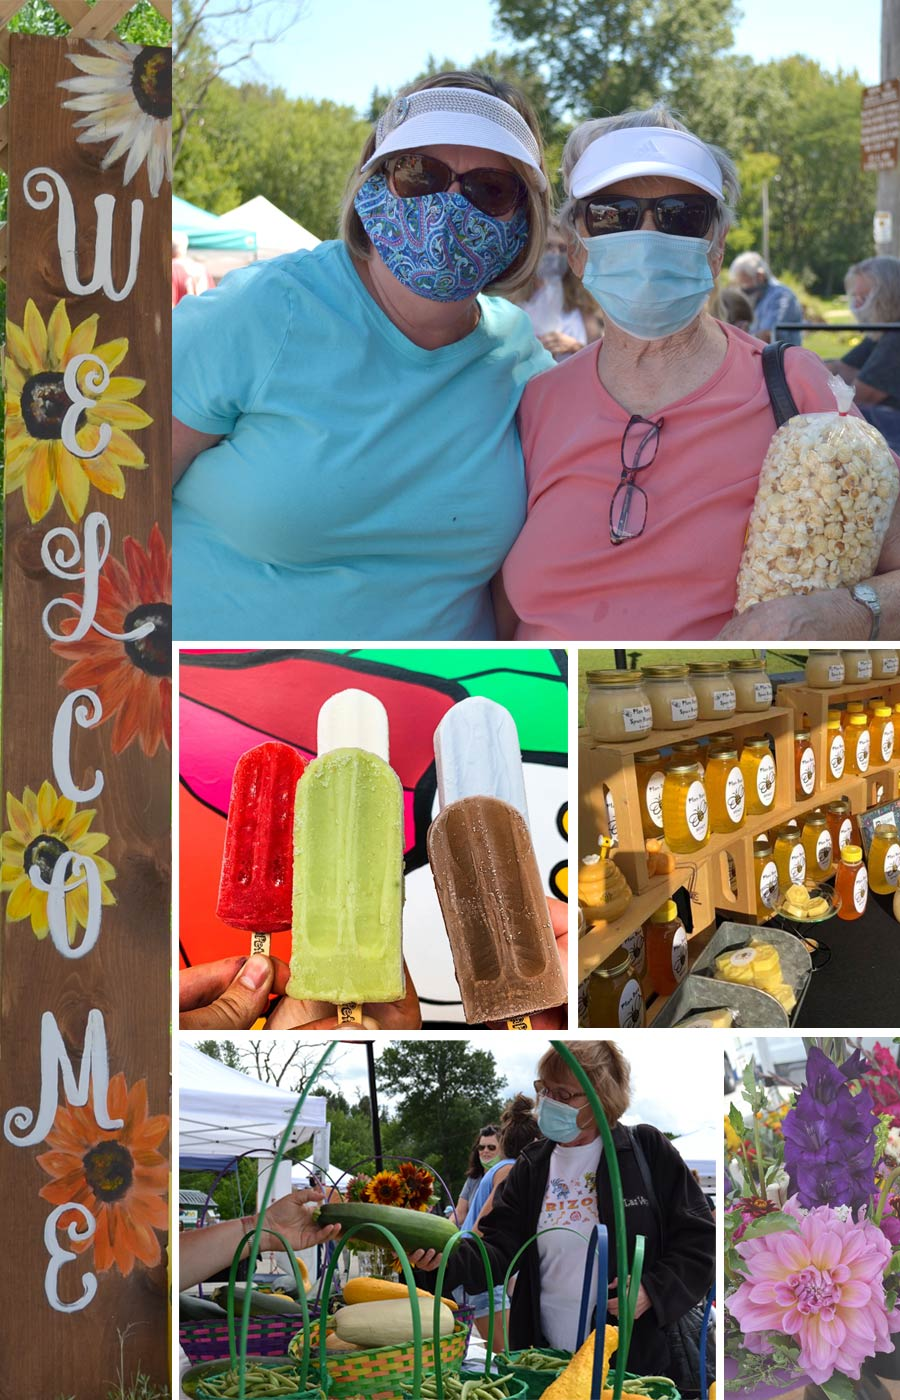 Photo of Menomonee Falls Farmers Market happenings.